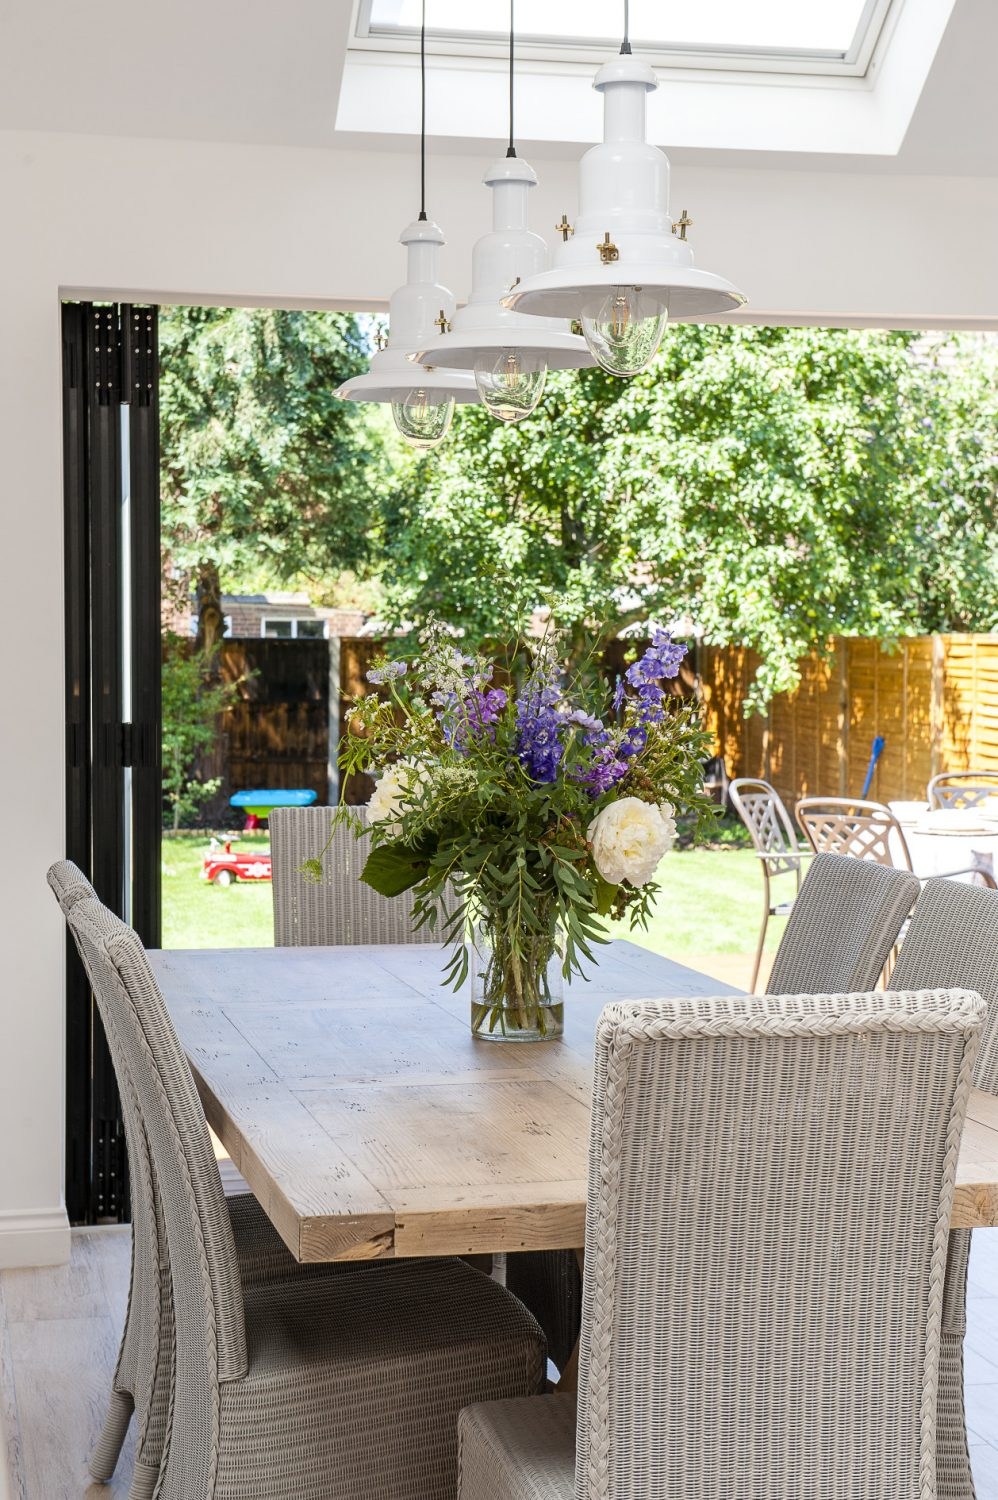 Bi-fold doors open the entire back of the house onto the garden